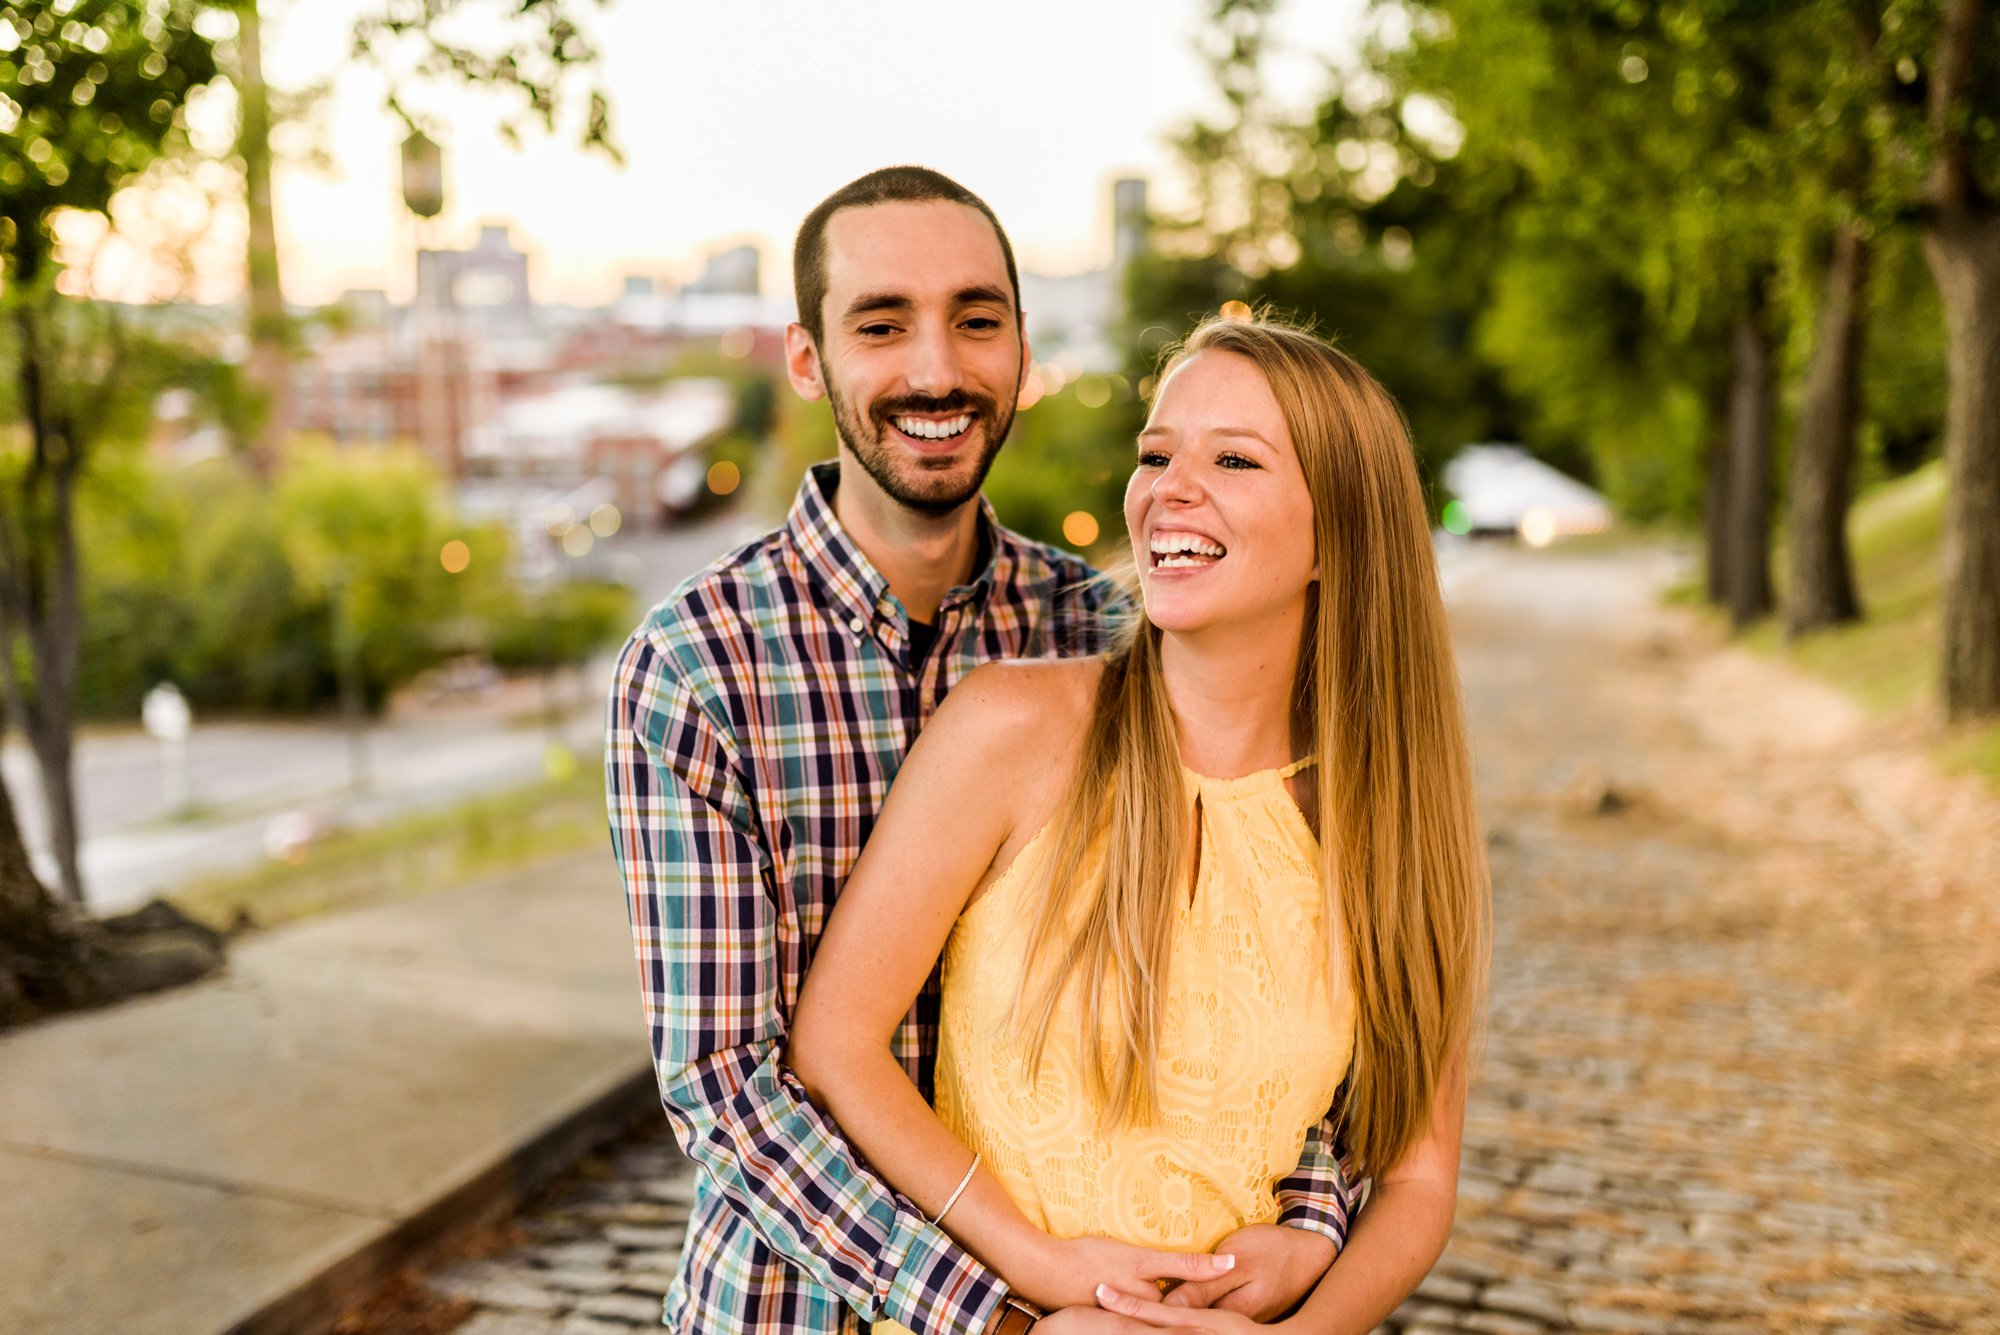 engagement-photography-88-love-stories-18.jpg